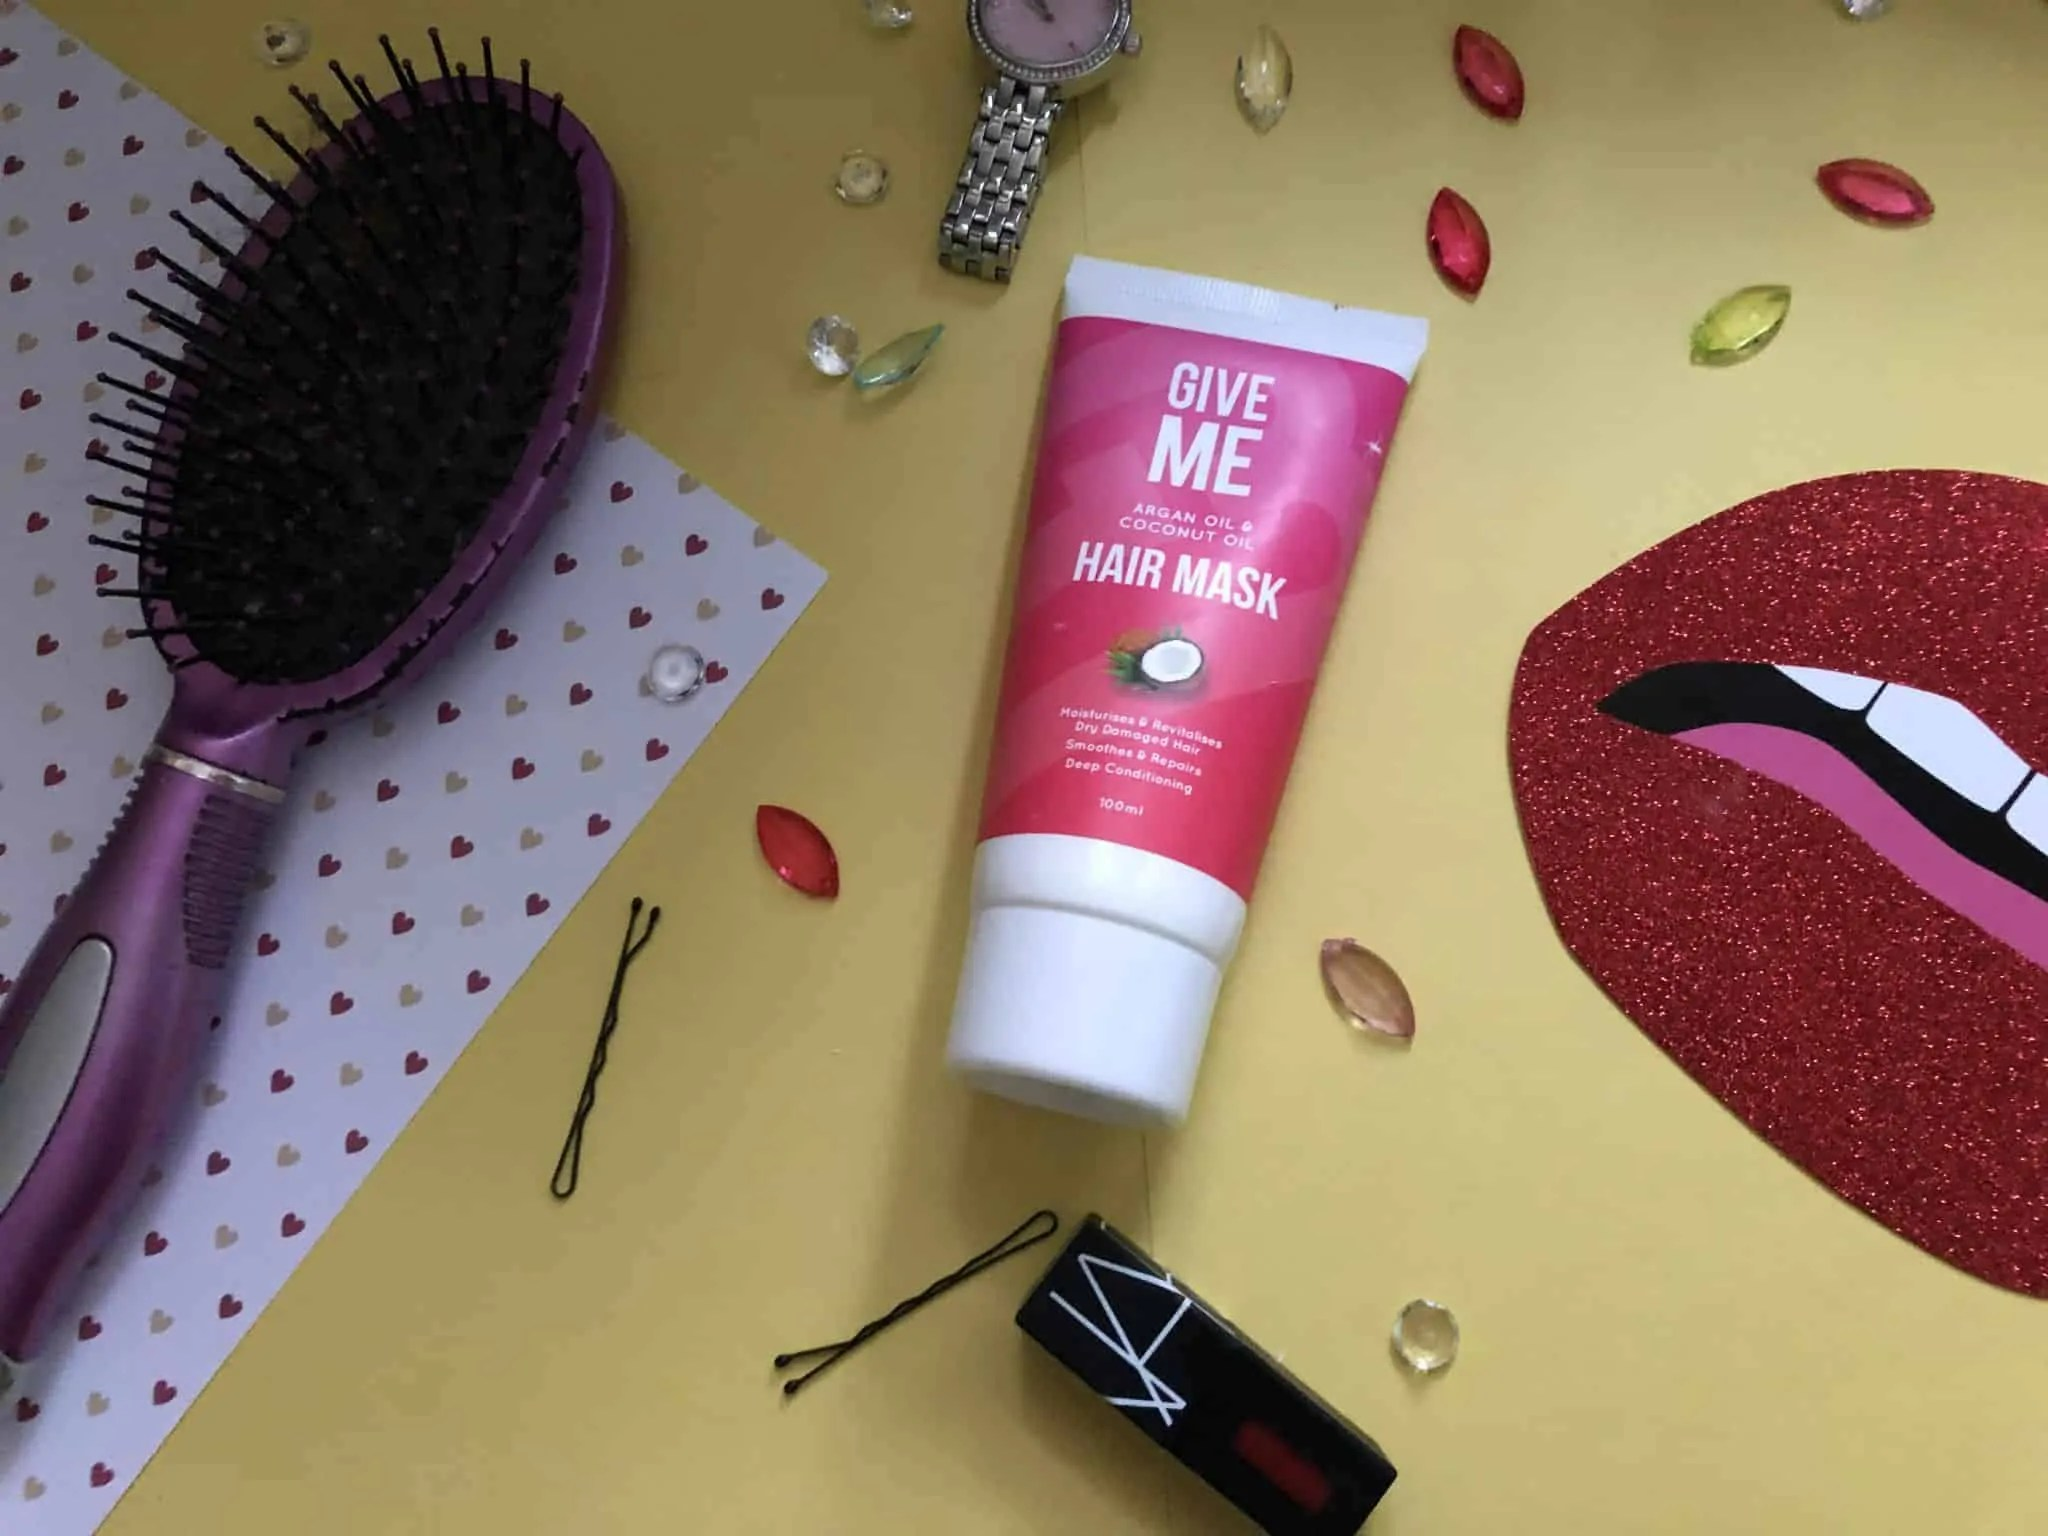 Give Me Argan oil and coconut oil hair mask review